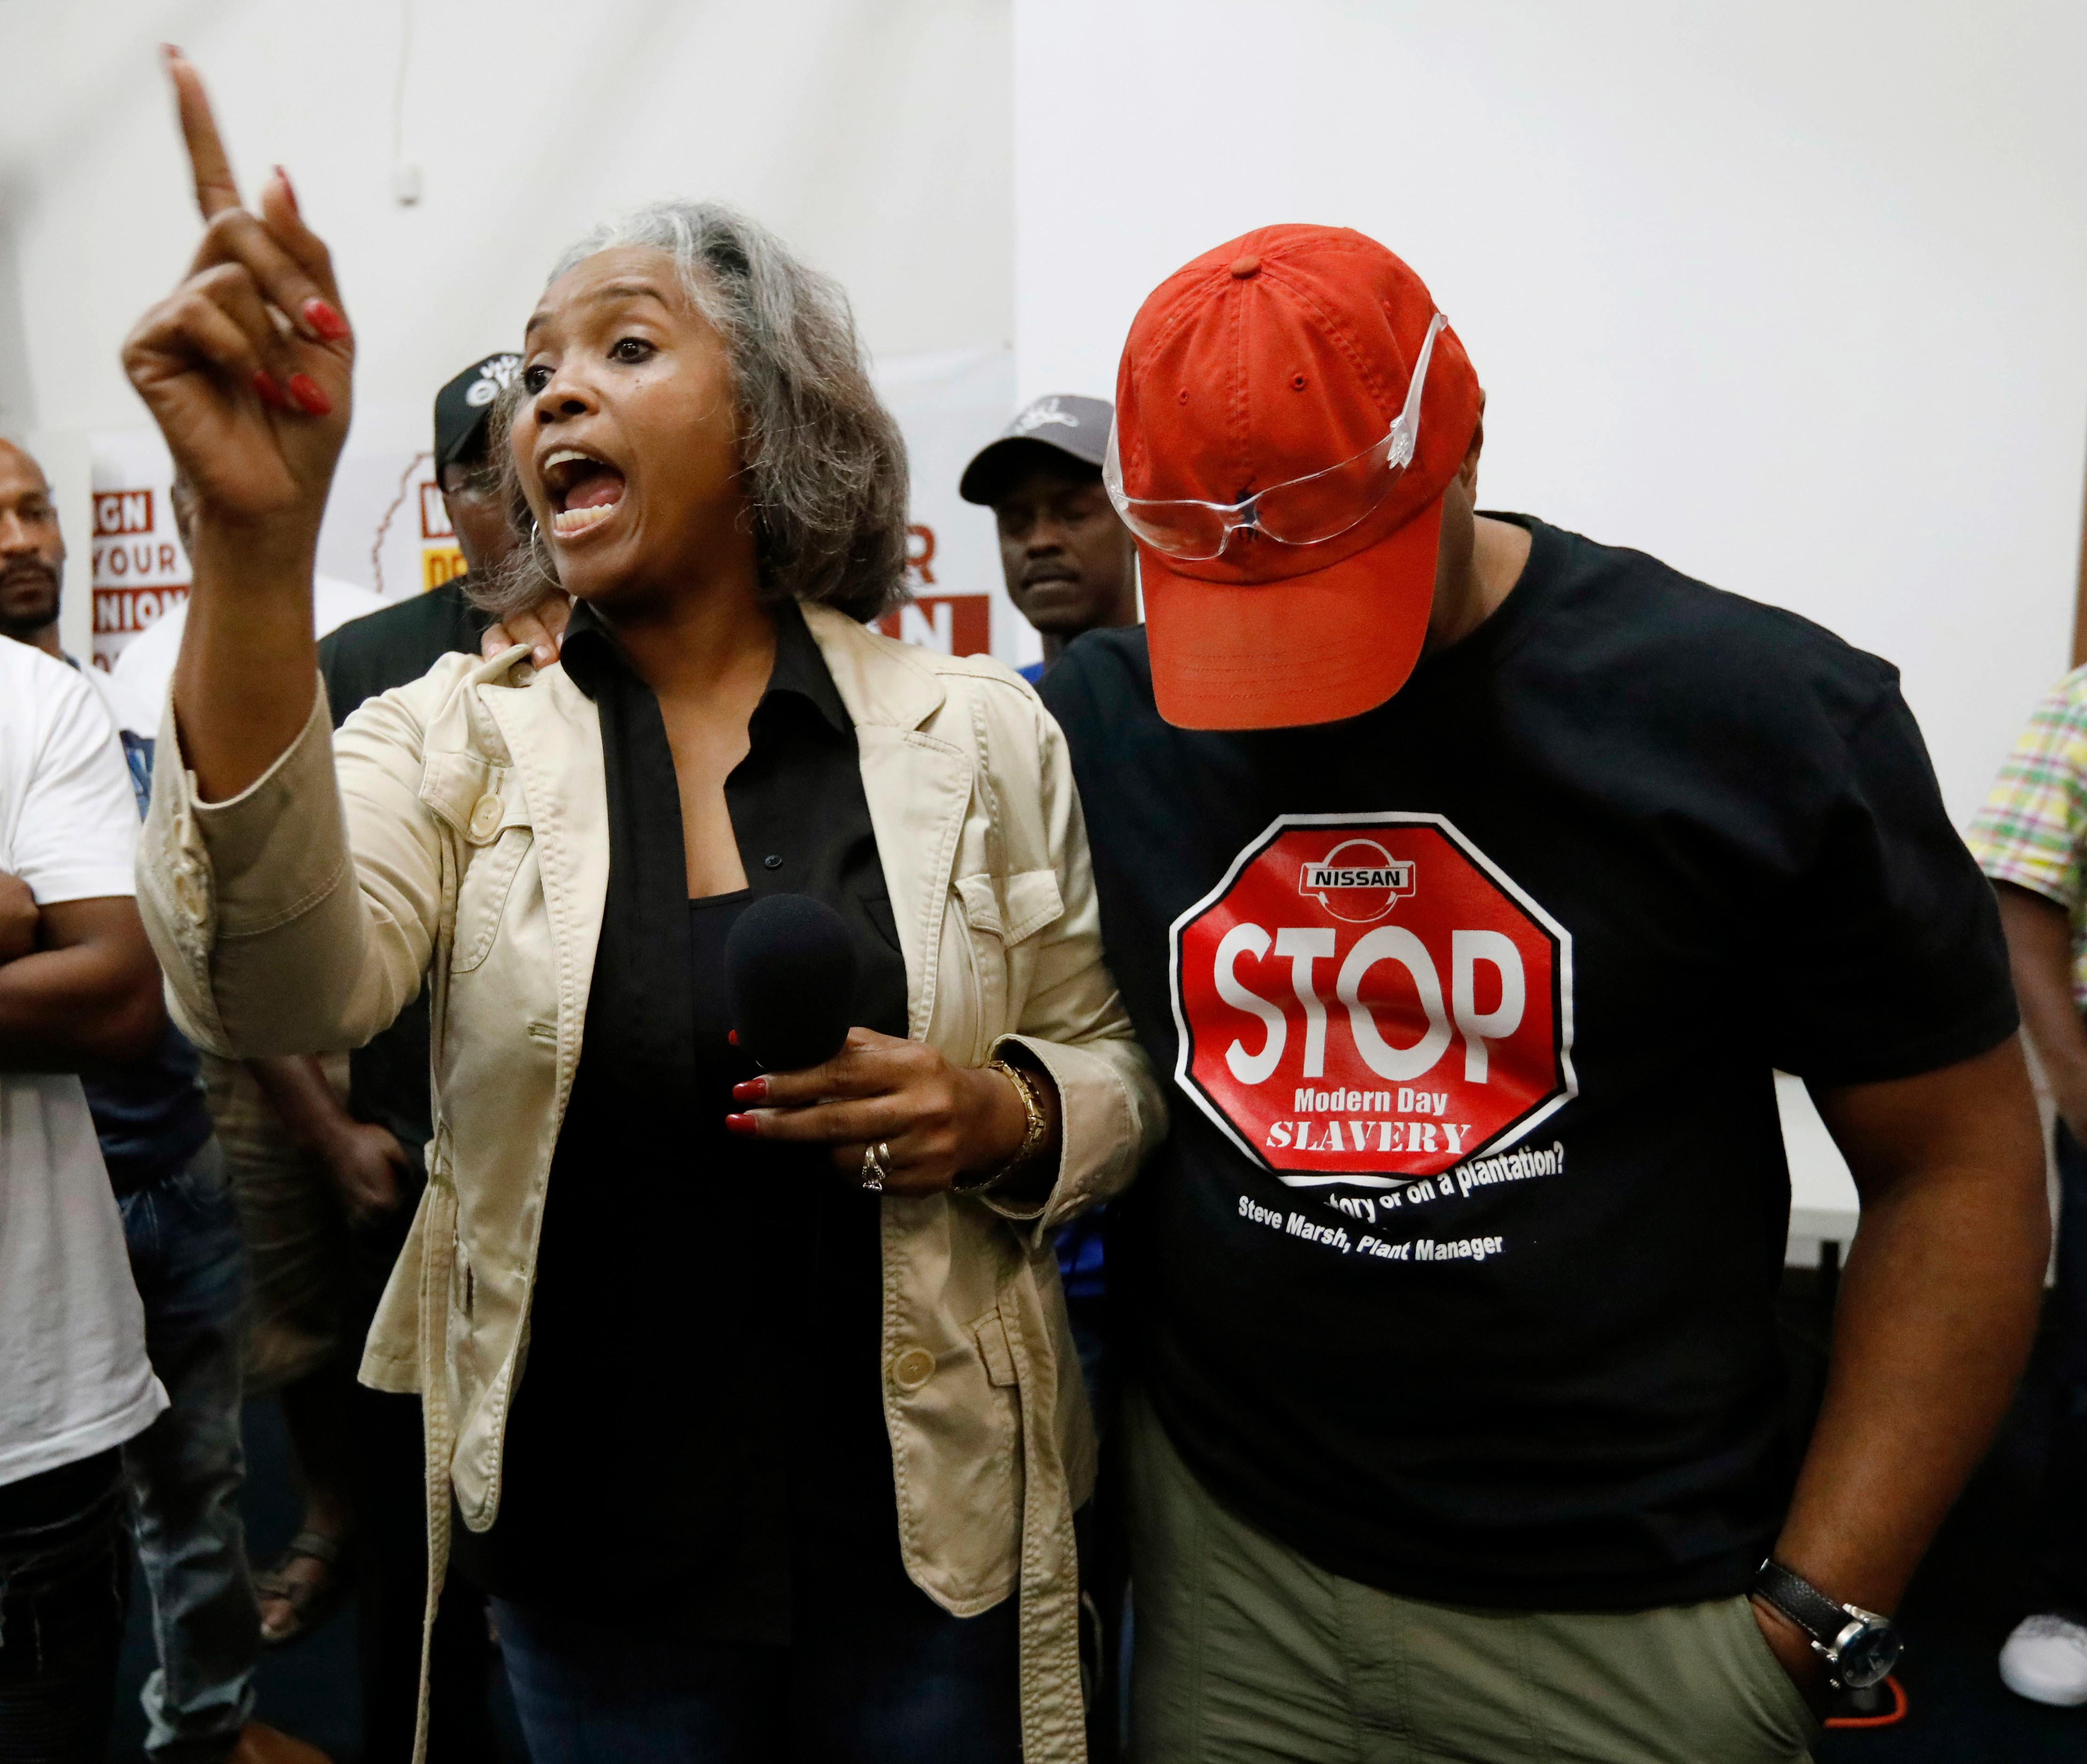 Nissan employee Betty Jones, left, consoles Morris Mock, right, while expressing her disappointment at losing their bid to form a union at the Nissan vehicle assembly plant in Canton, Miss., Friday, Aug. 4, 2017.  (AP Photo/Rogelio V. Solis)